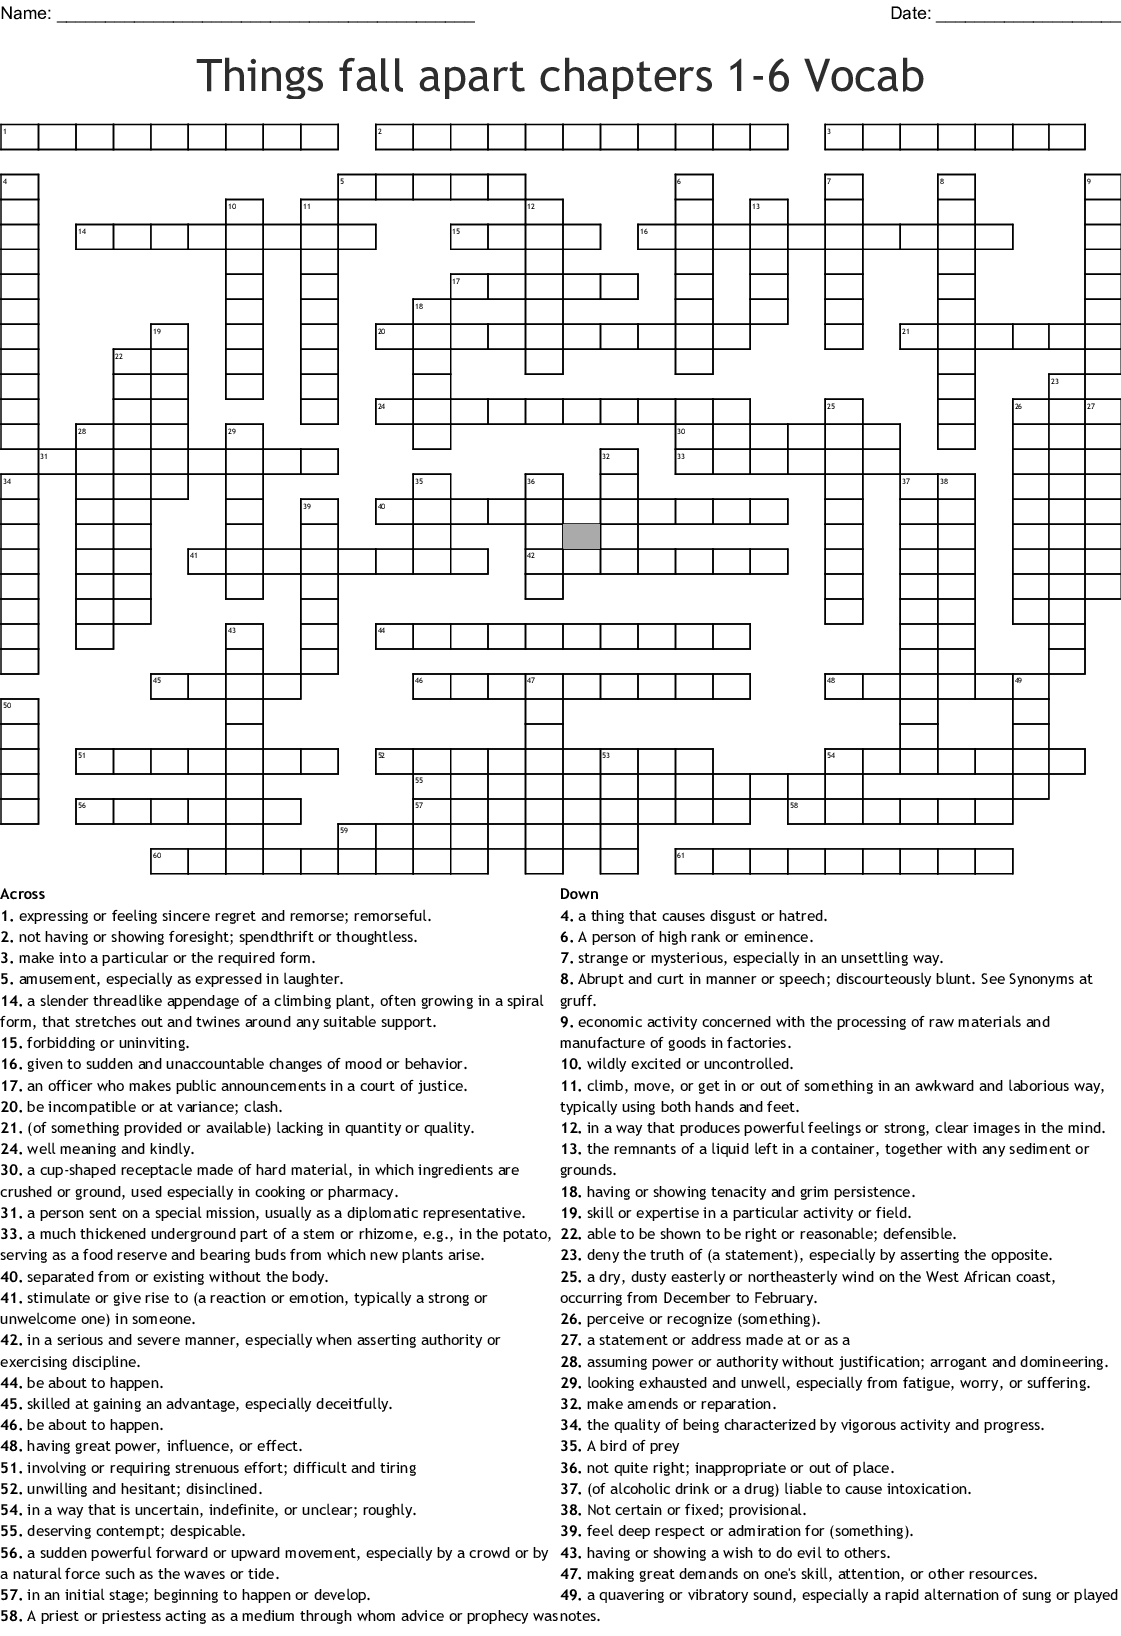 Things Fall Apart Chapters 1 6 Vocab Crossword